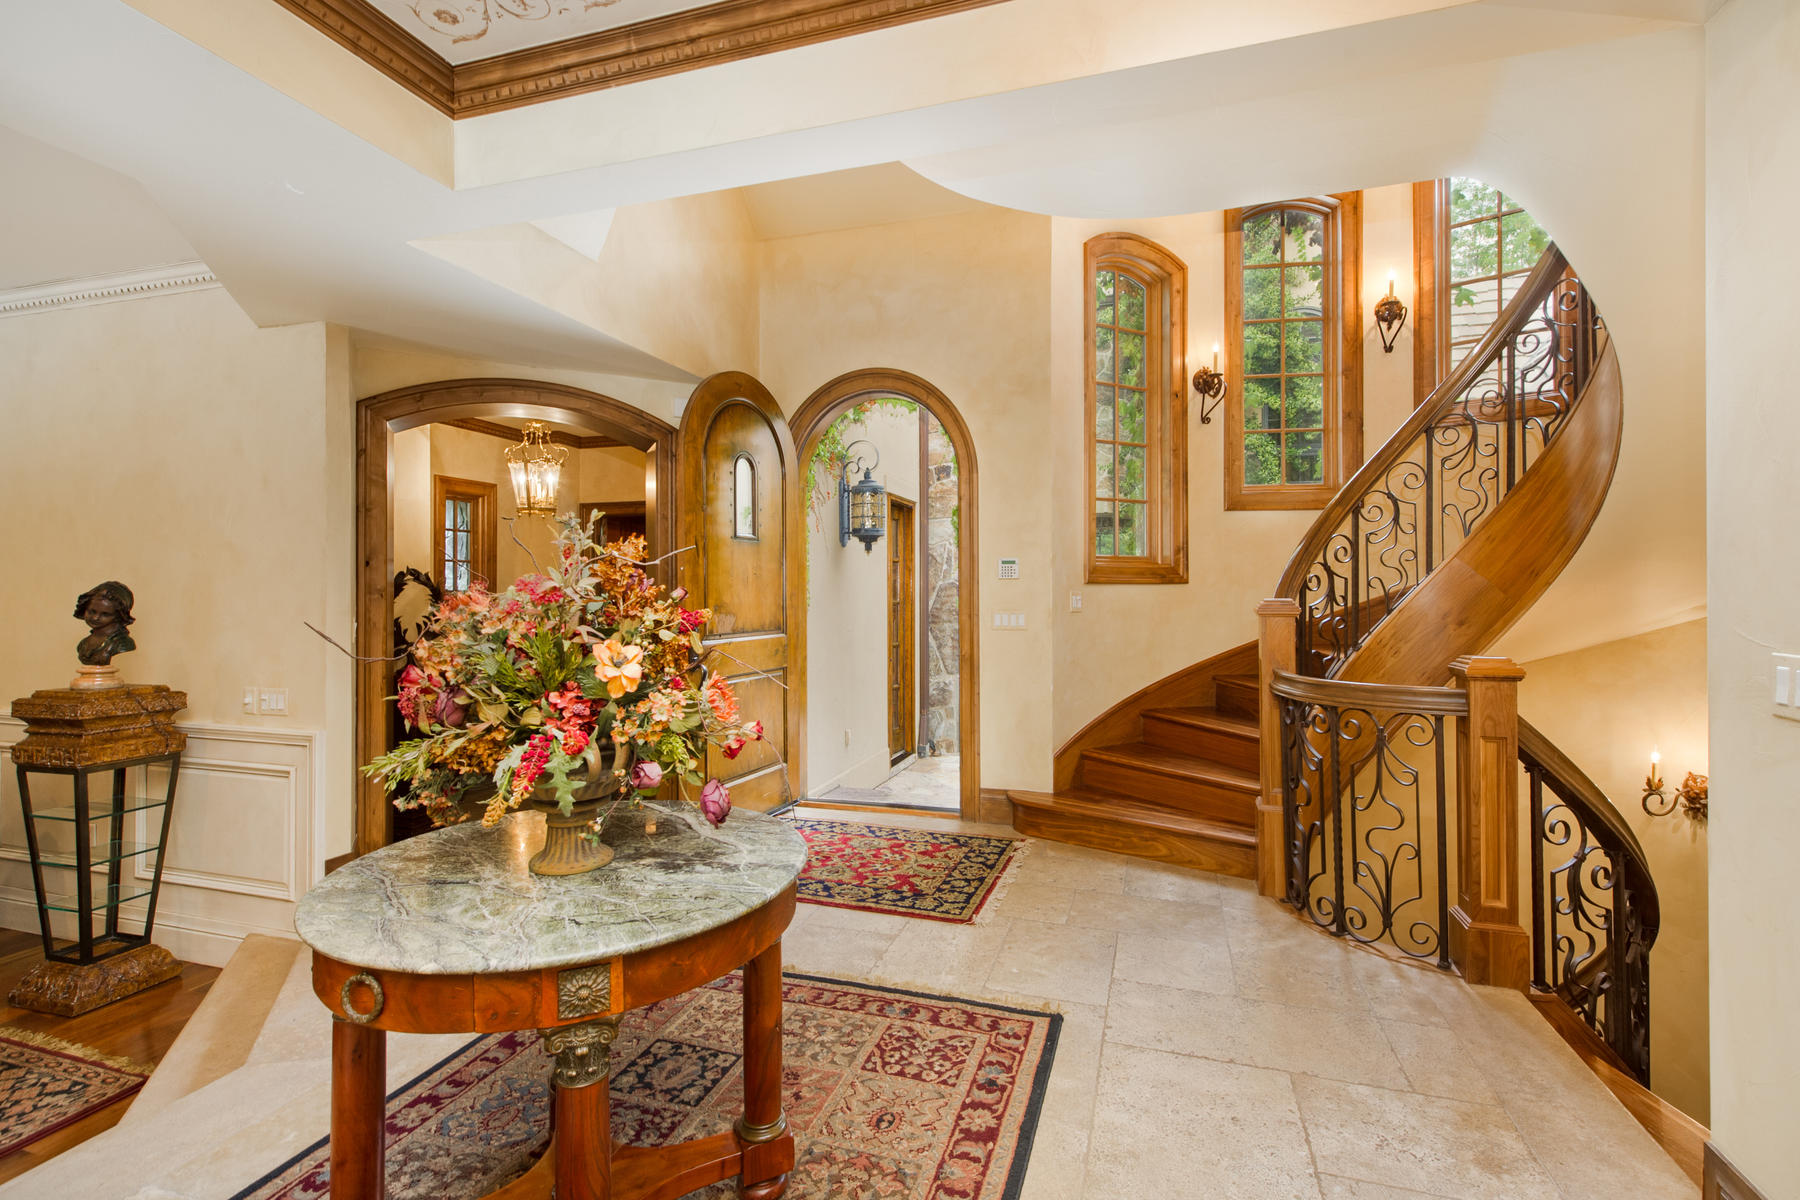 Additional photo for property listing at MODERN-EUROPEAN ESTATE, THIS GRAND PROPERTY HAS INCREDIBLE FINISHES THROUGHOUT T 4747 S Downing St Cherry Hills Village, Colorado 80113 United States